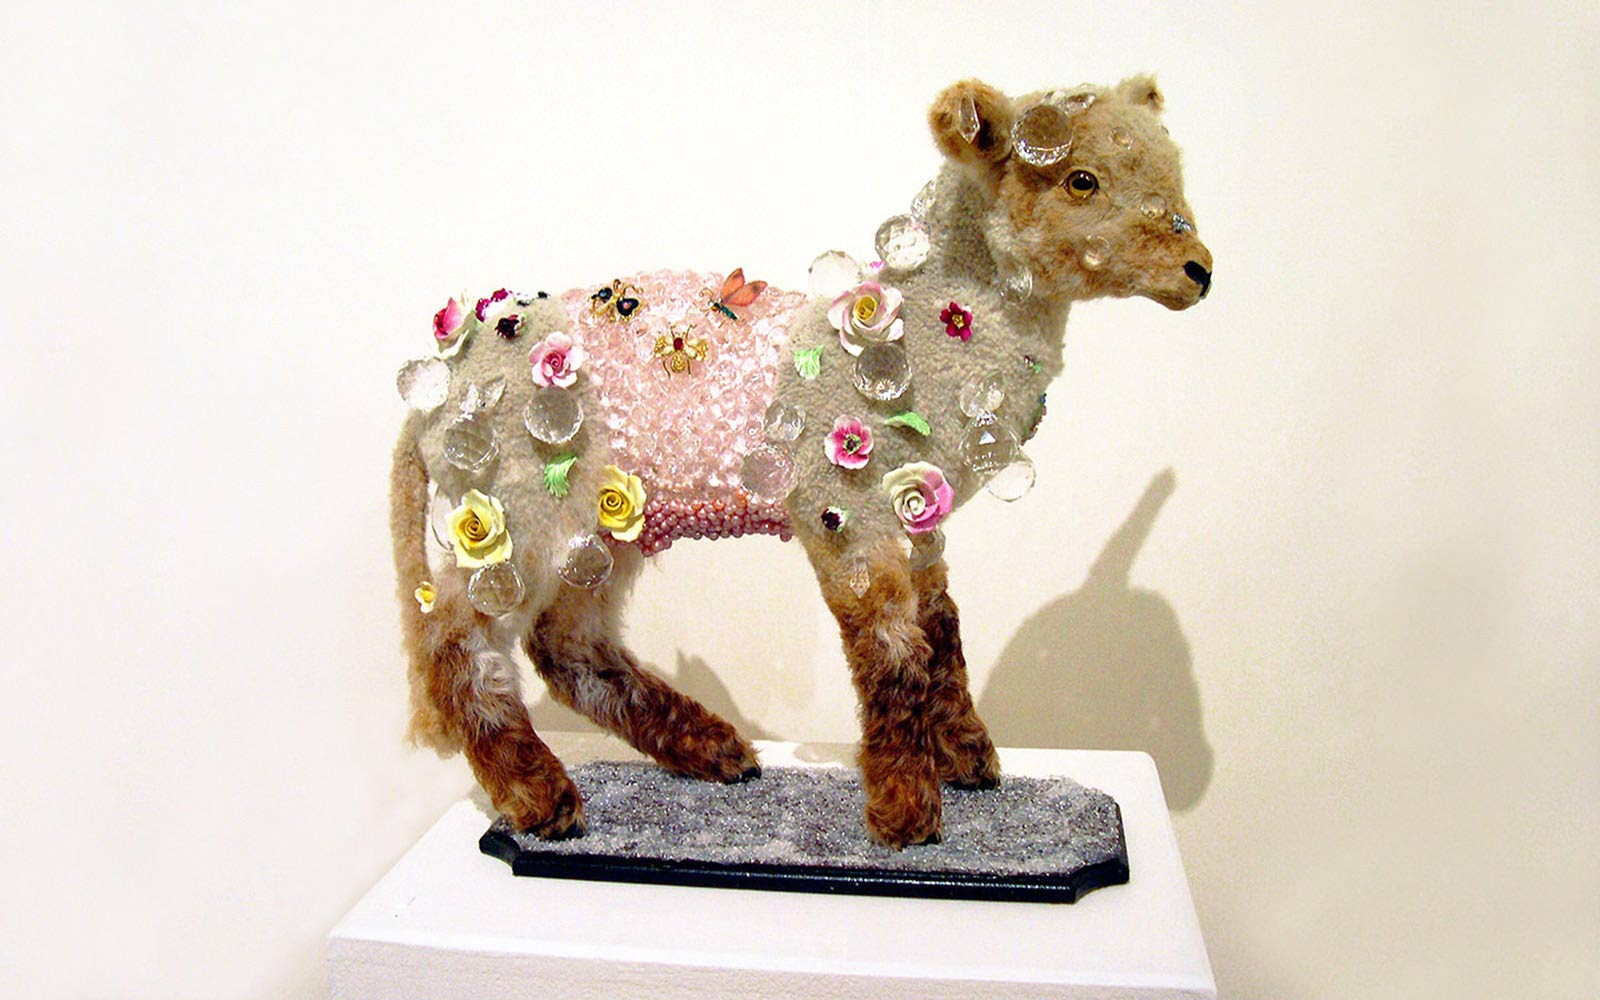 Angela Singer  Chilled Lamb , 2004 Recycled vintage taxidermy lamb, blowflies, gems, mixed media 490 x 560 x 230 mm [Collection of the Wallace Arts Trust]   _______